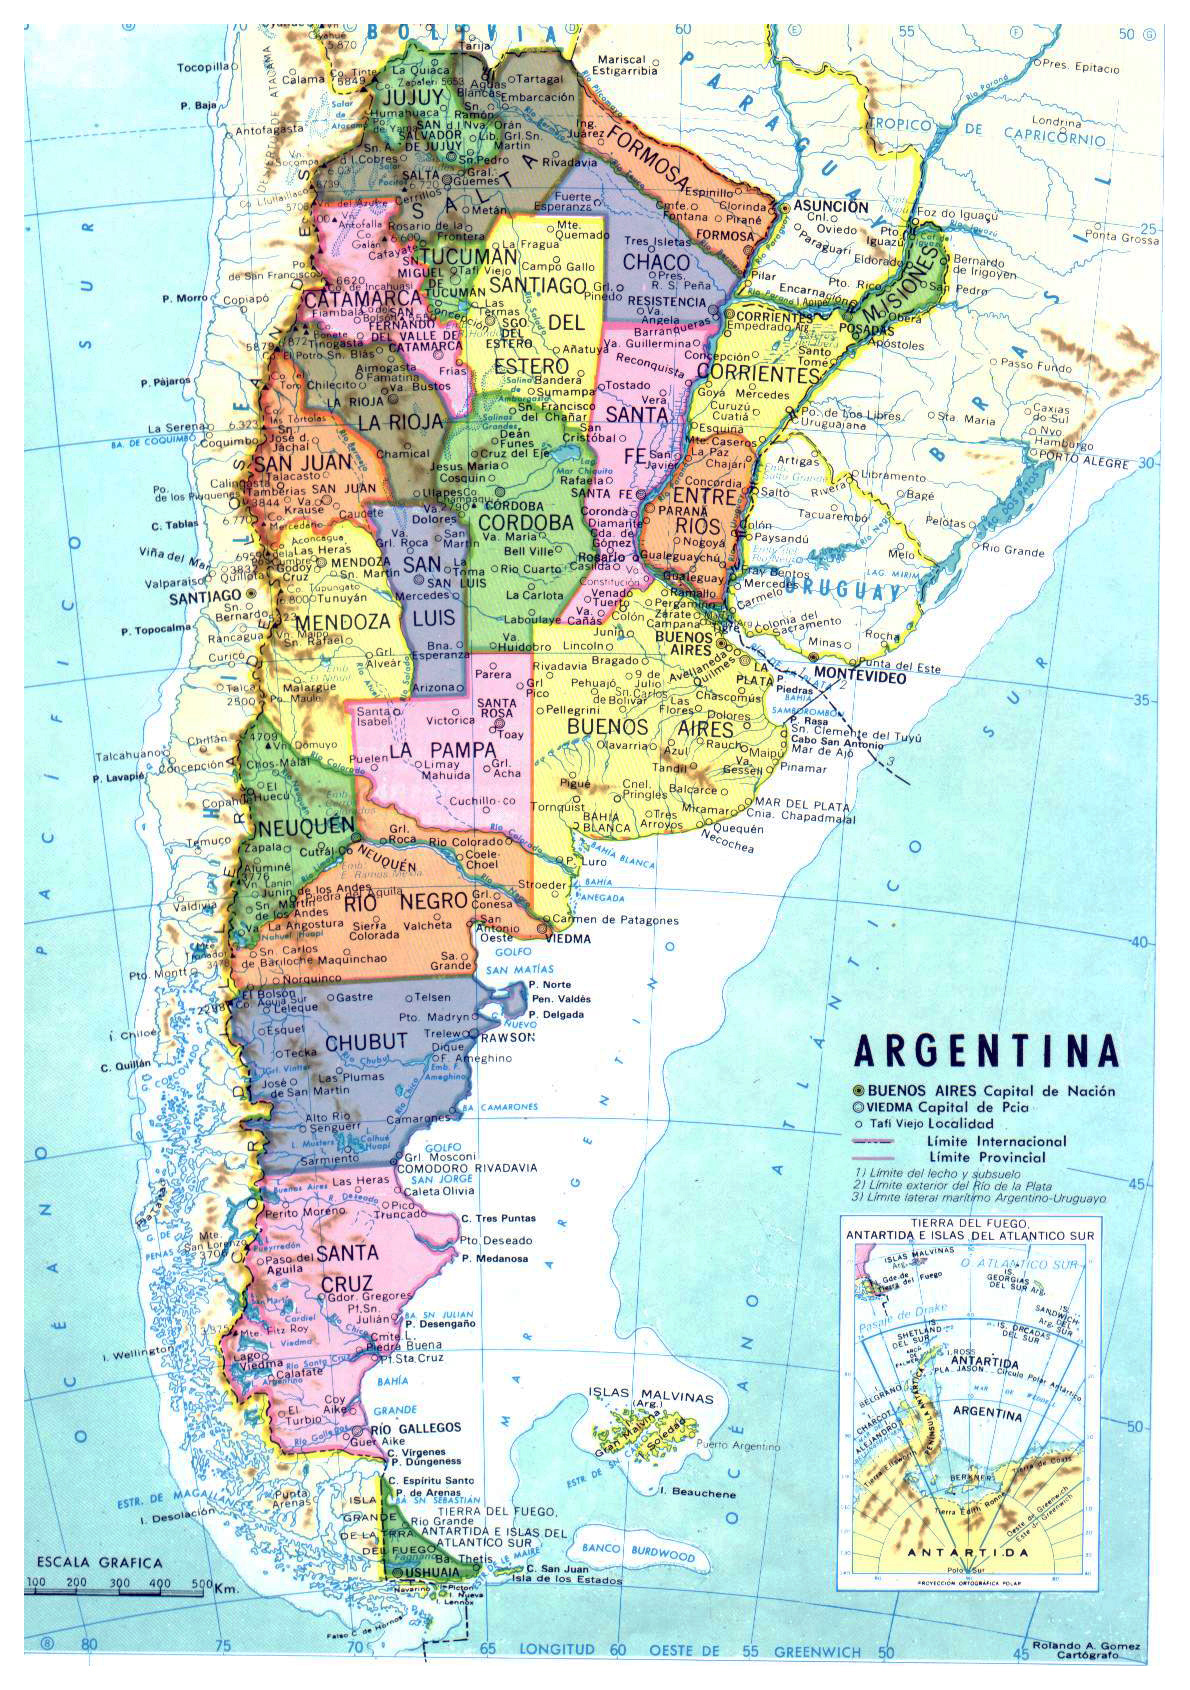 Detailed political and administrative map of Argentina Argentina